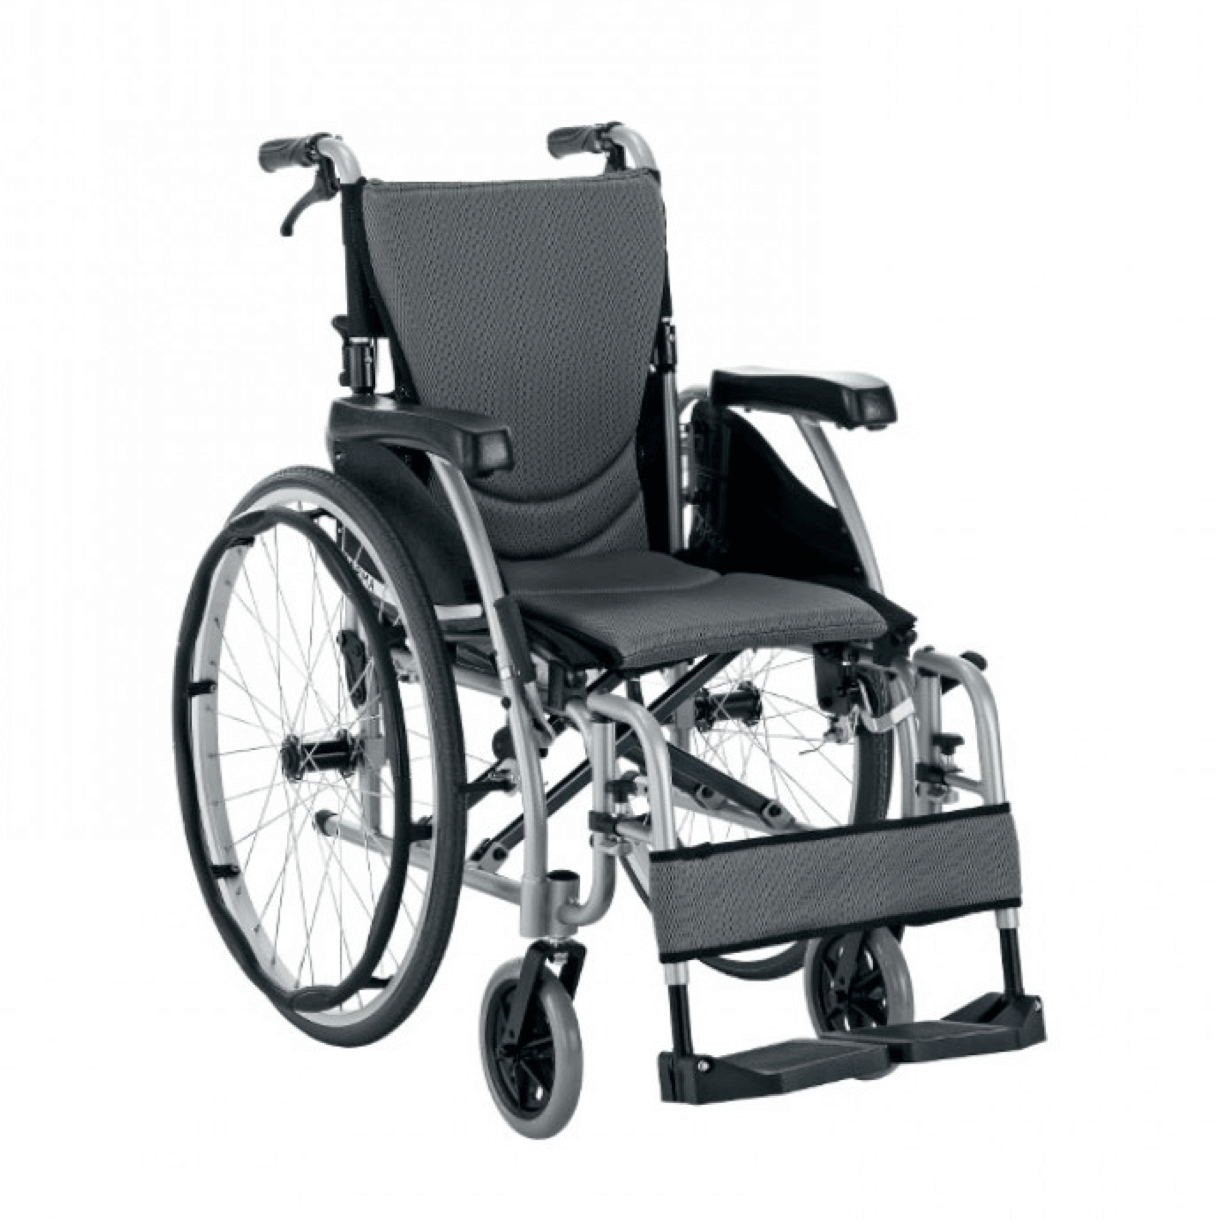 Karma Ergo 125 - manual wheelchair